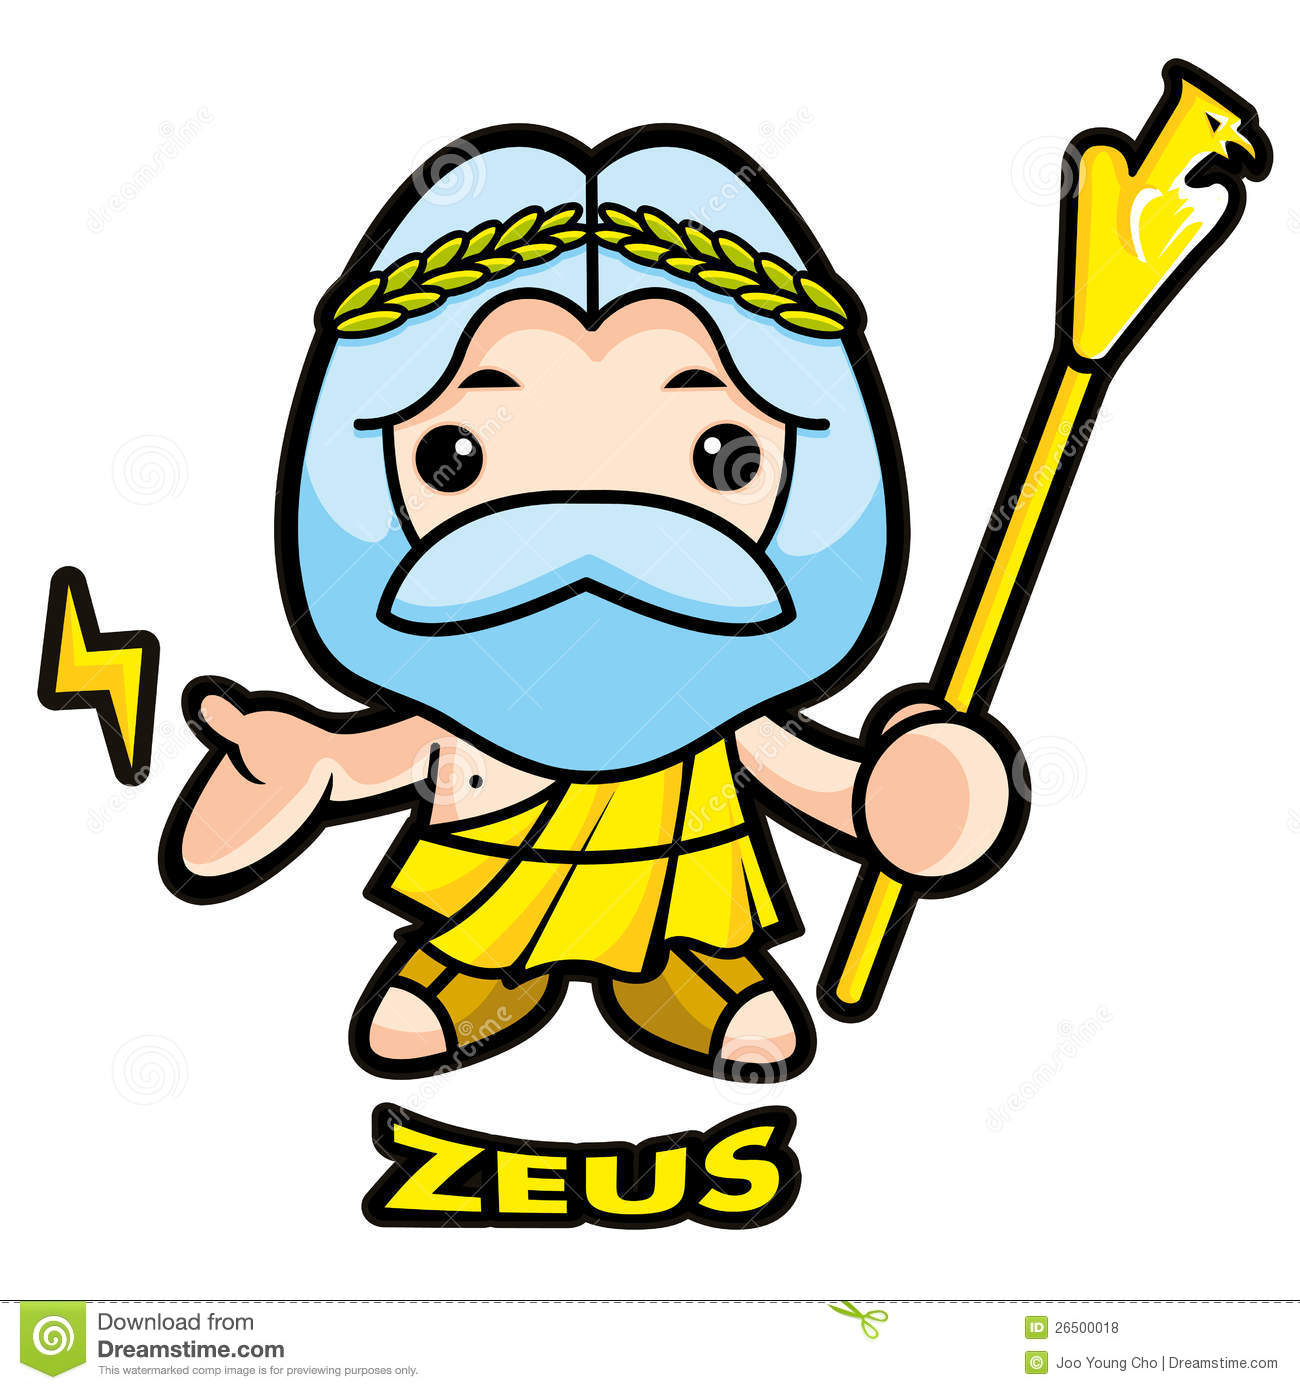 picture free Free download best on. Zeus clipart cute.